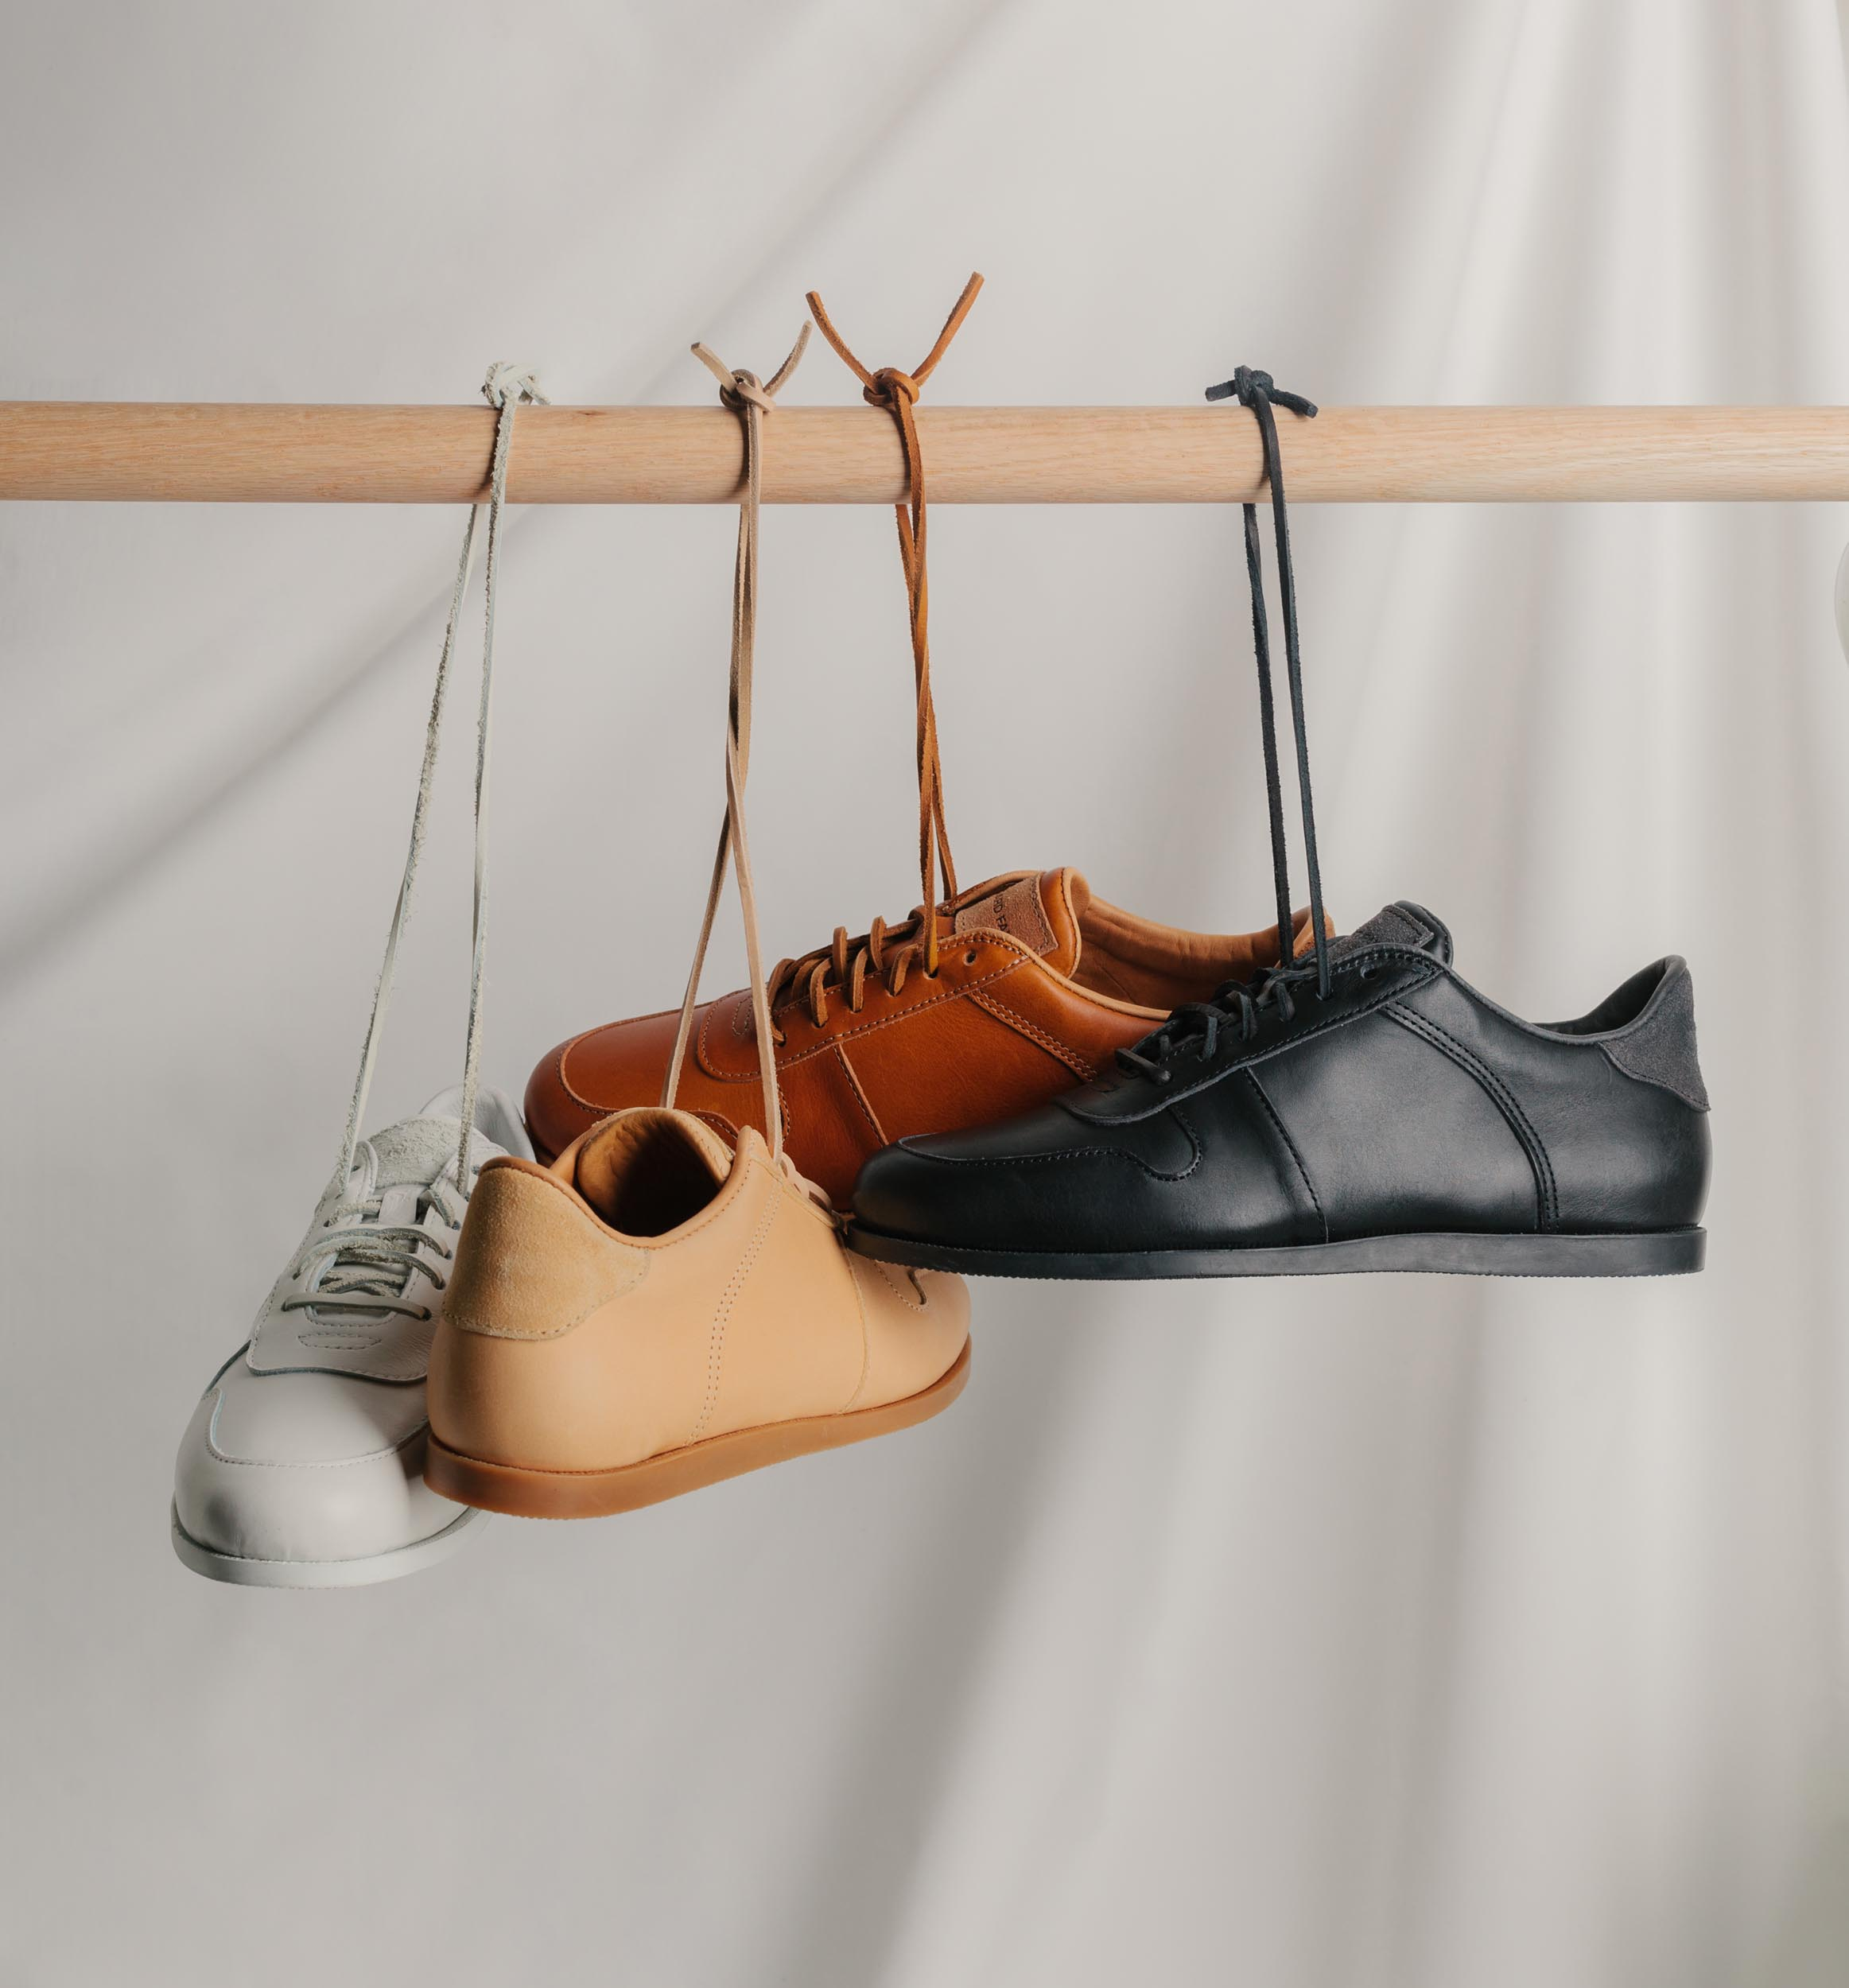 all-colors-hanging